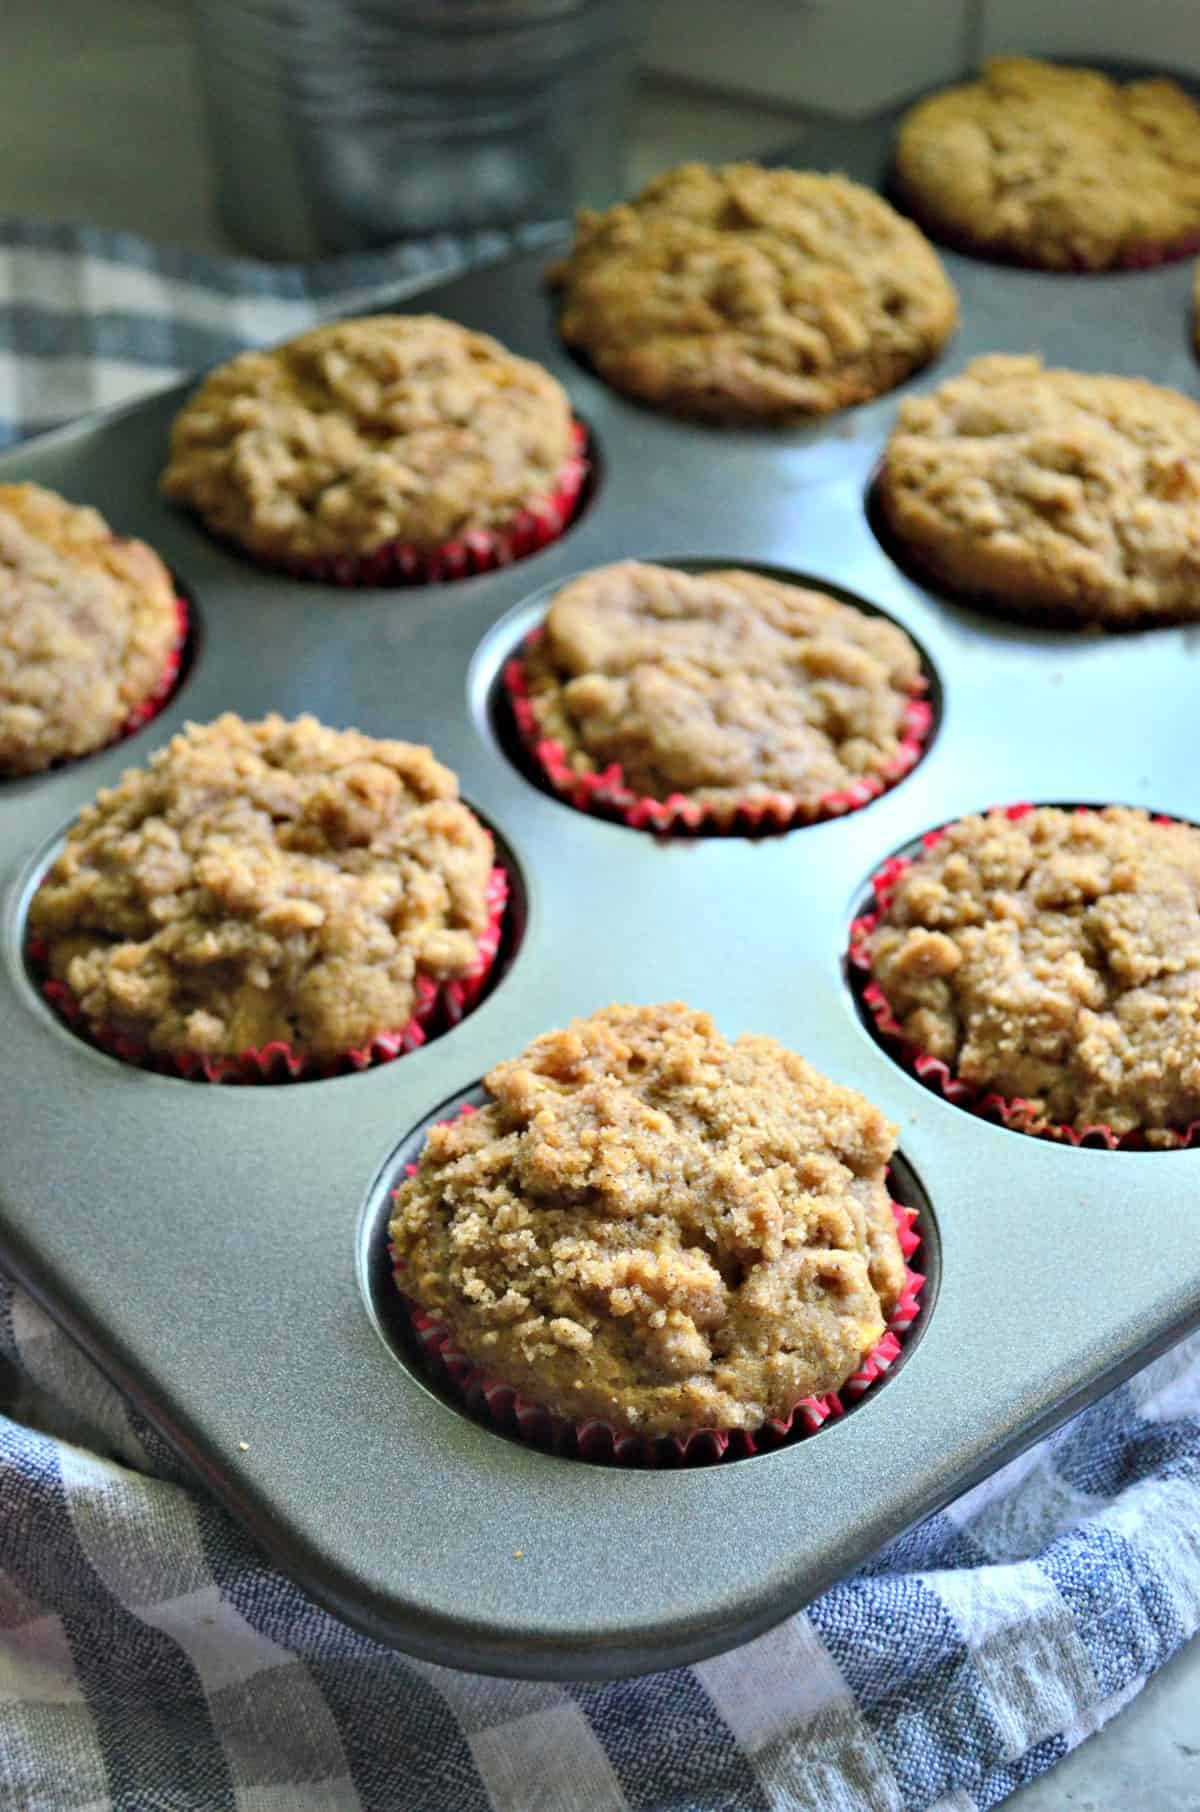 Apple Cinnamon Streusel Muffins in tin muffin pan with one in focus and the rest blurred.